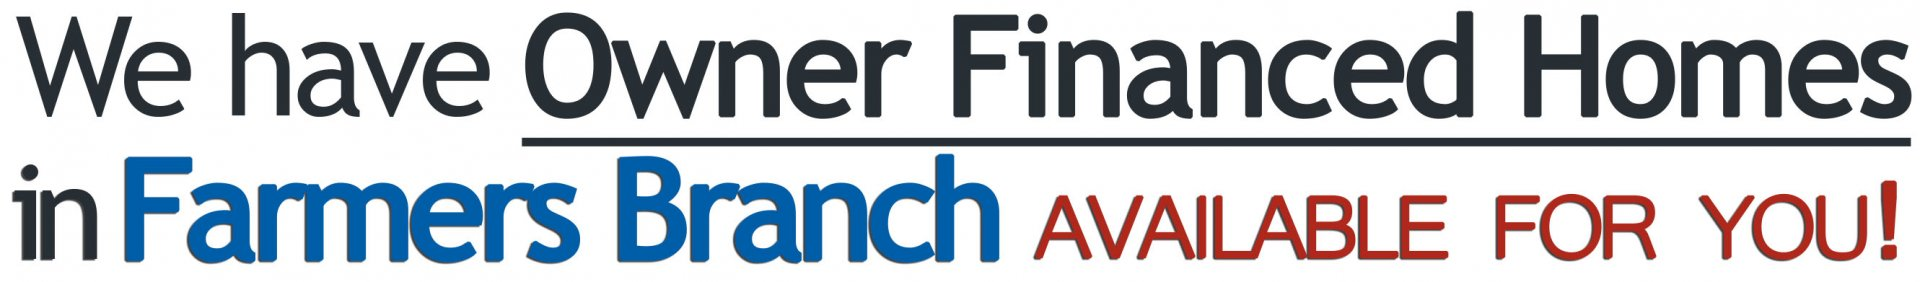 Owner Financed Homes in Farmers Branch - Owner Finance Dallas